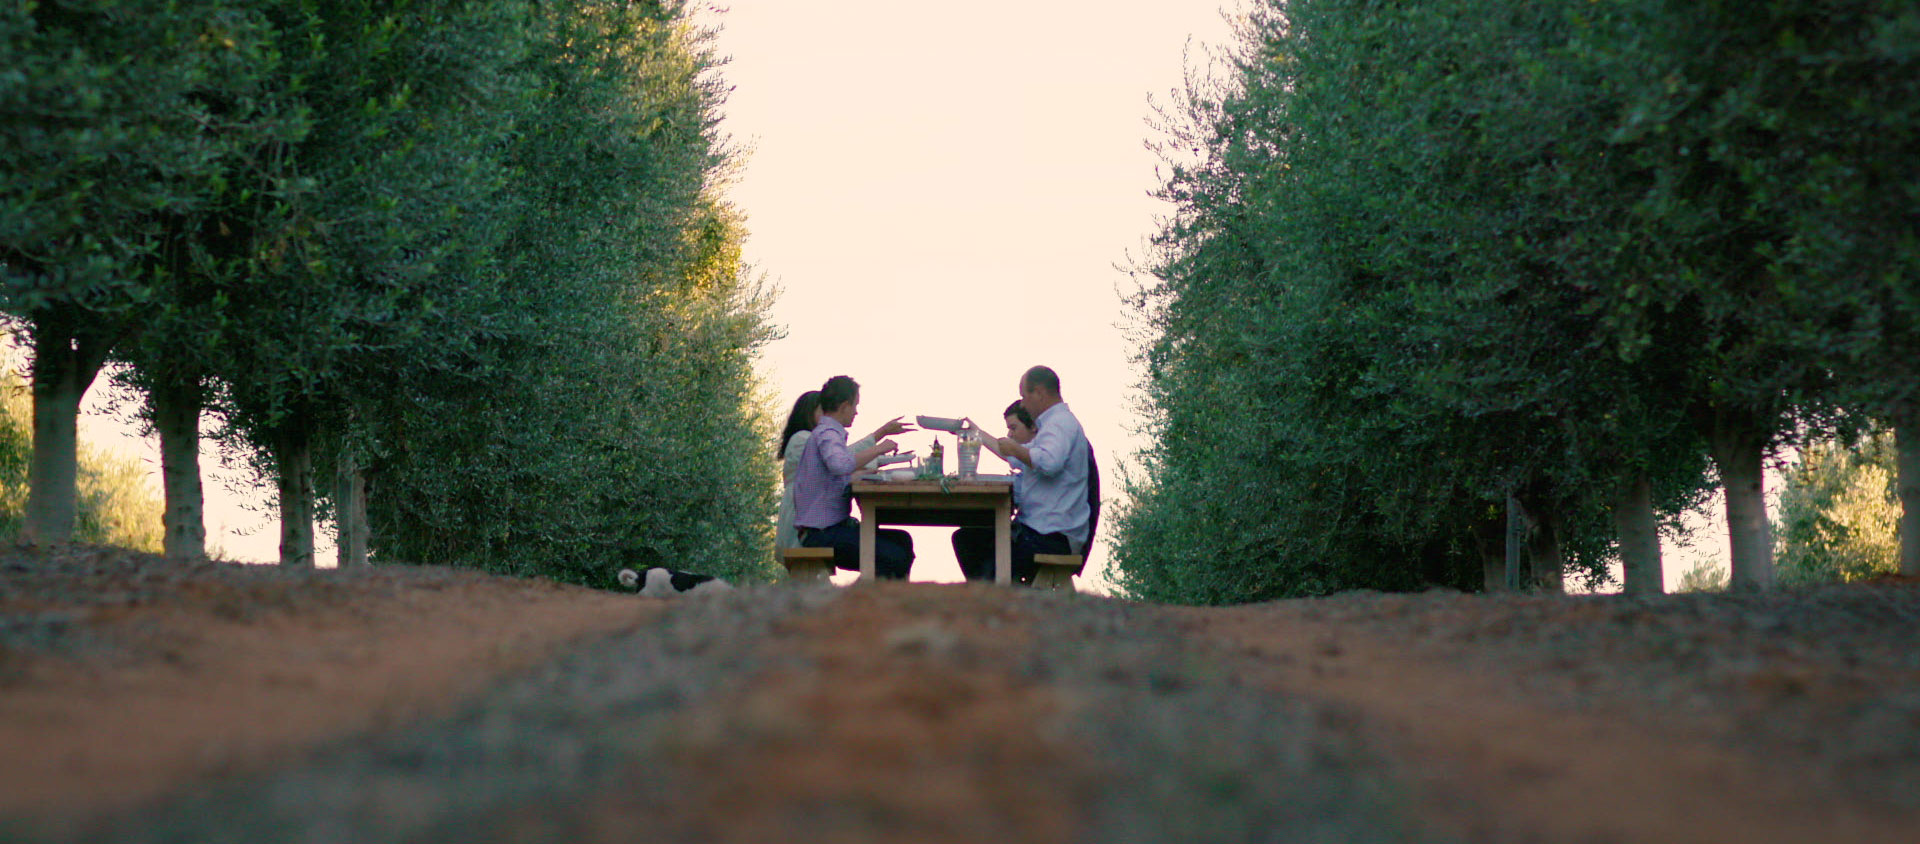 Cobram Estate Olives is a proud Australian-owned business, founded by two passionateAustralian farmers.